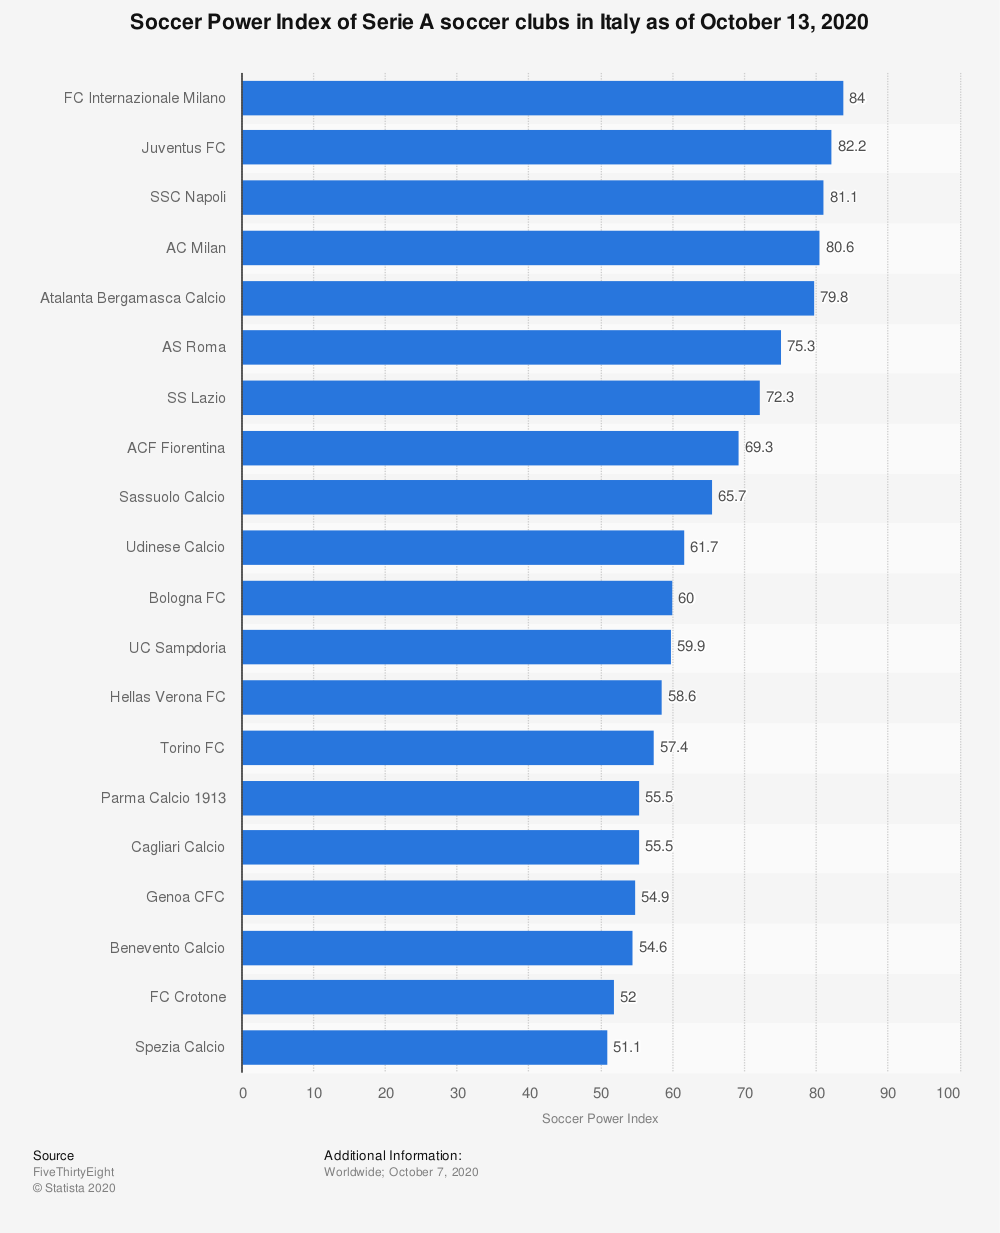 Statistic: Soccer Power Index of Serie A soccer clubs in Italy as of October 13, 2020 | Statista